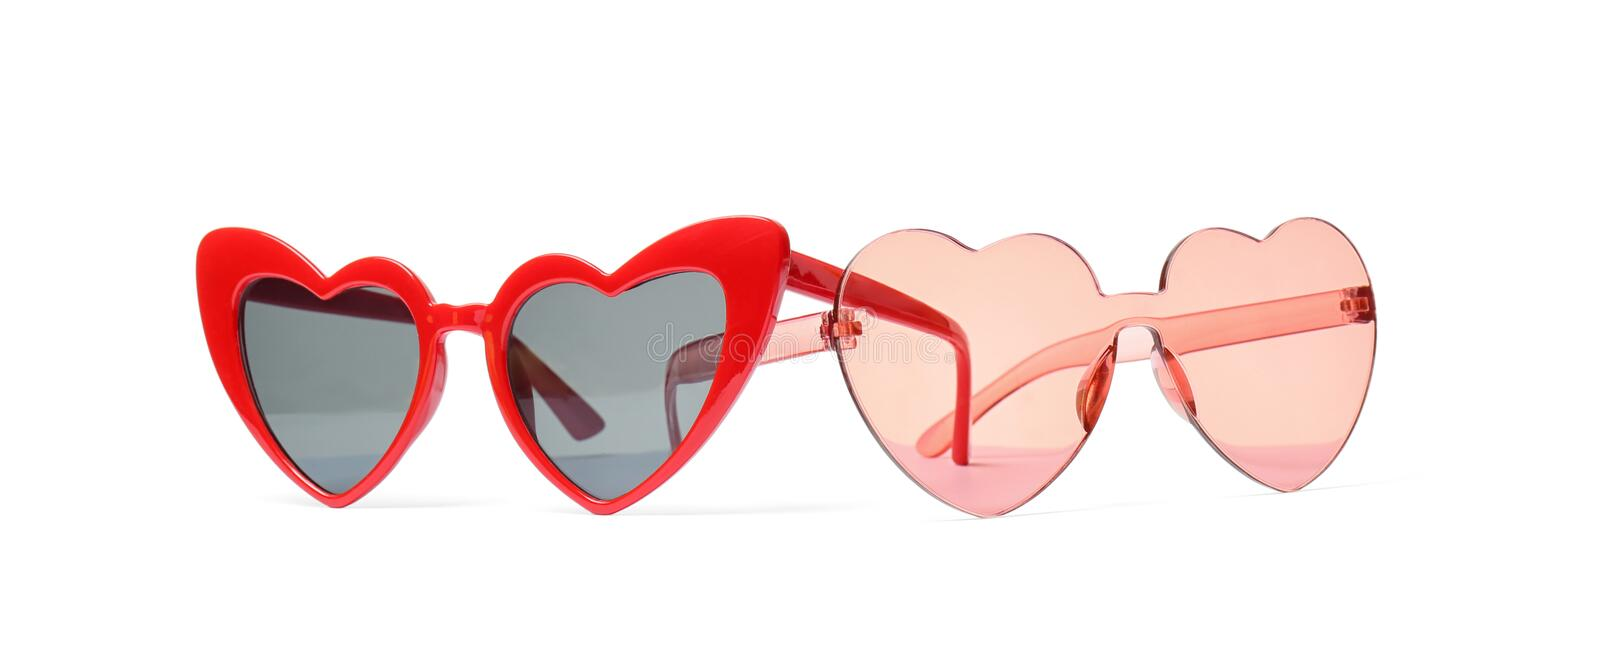 Different stylish heart shaped glasses on white royalty free stock photos